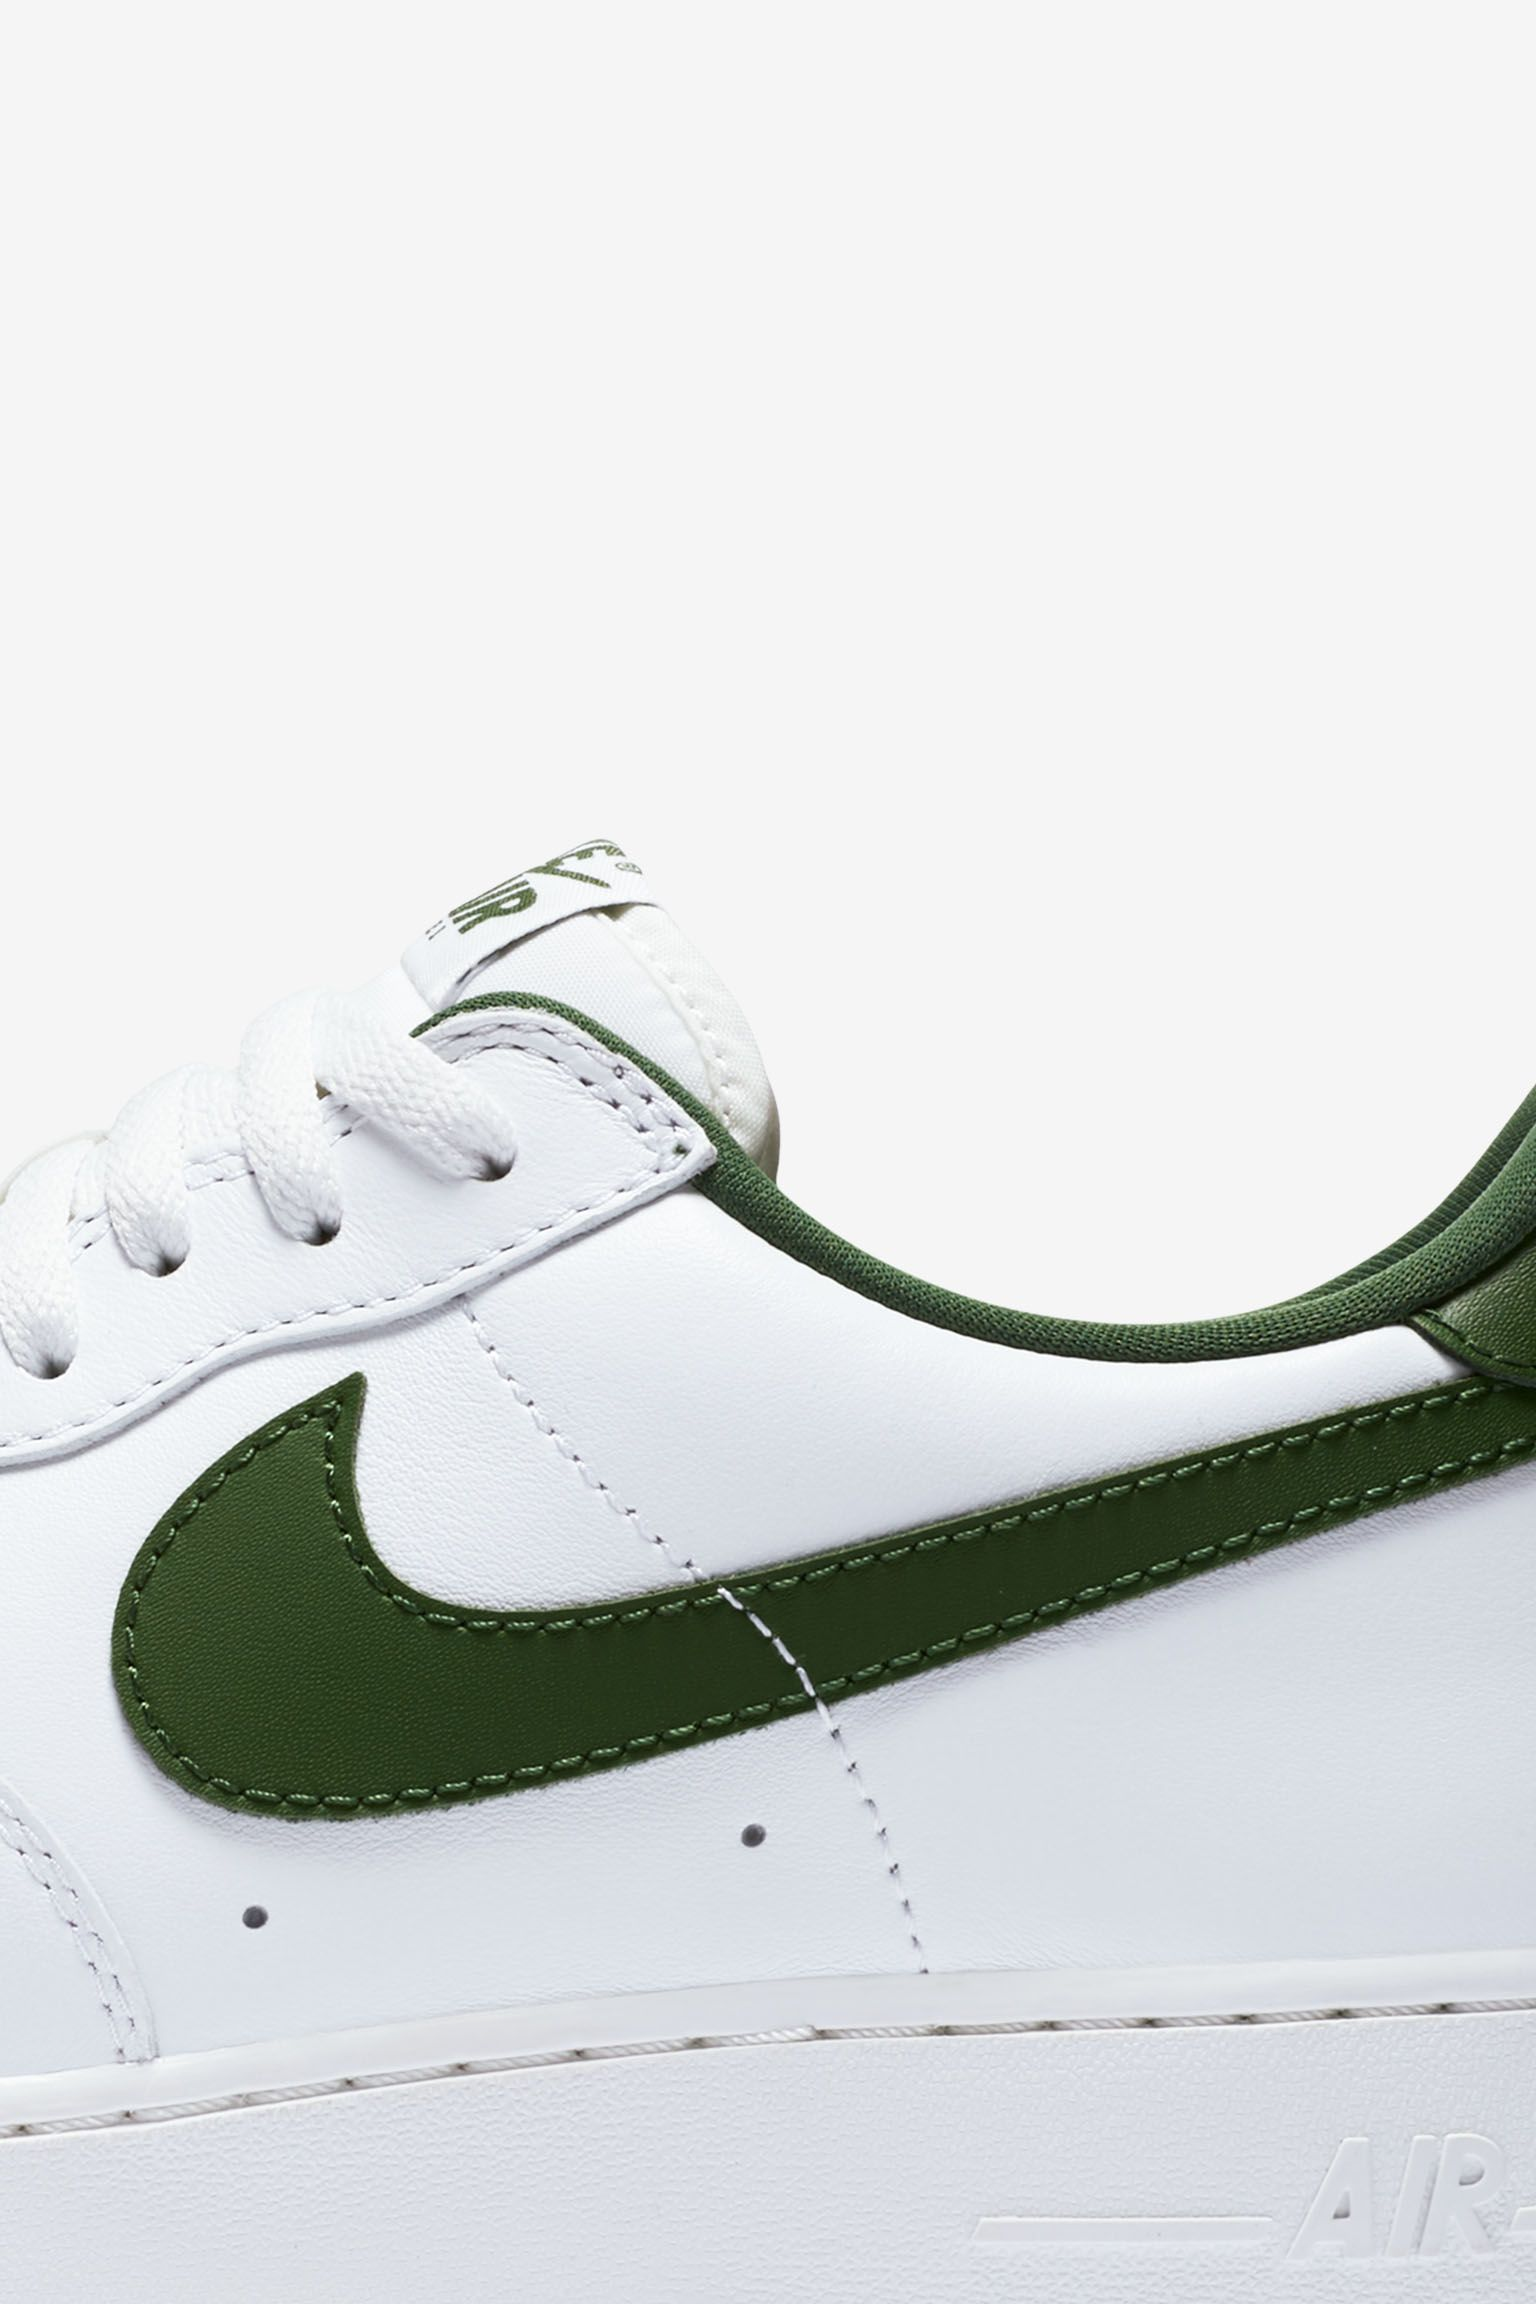 Nike Air Force 1 Low Retro 'White & Forest Green' Release Date